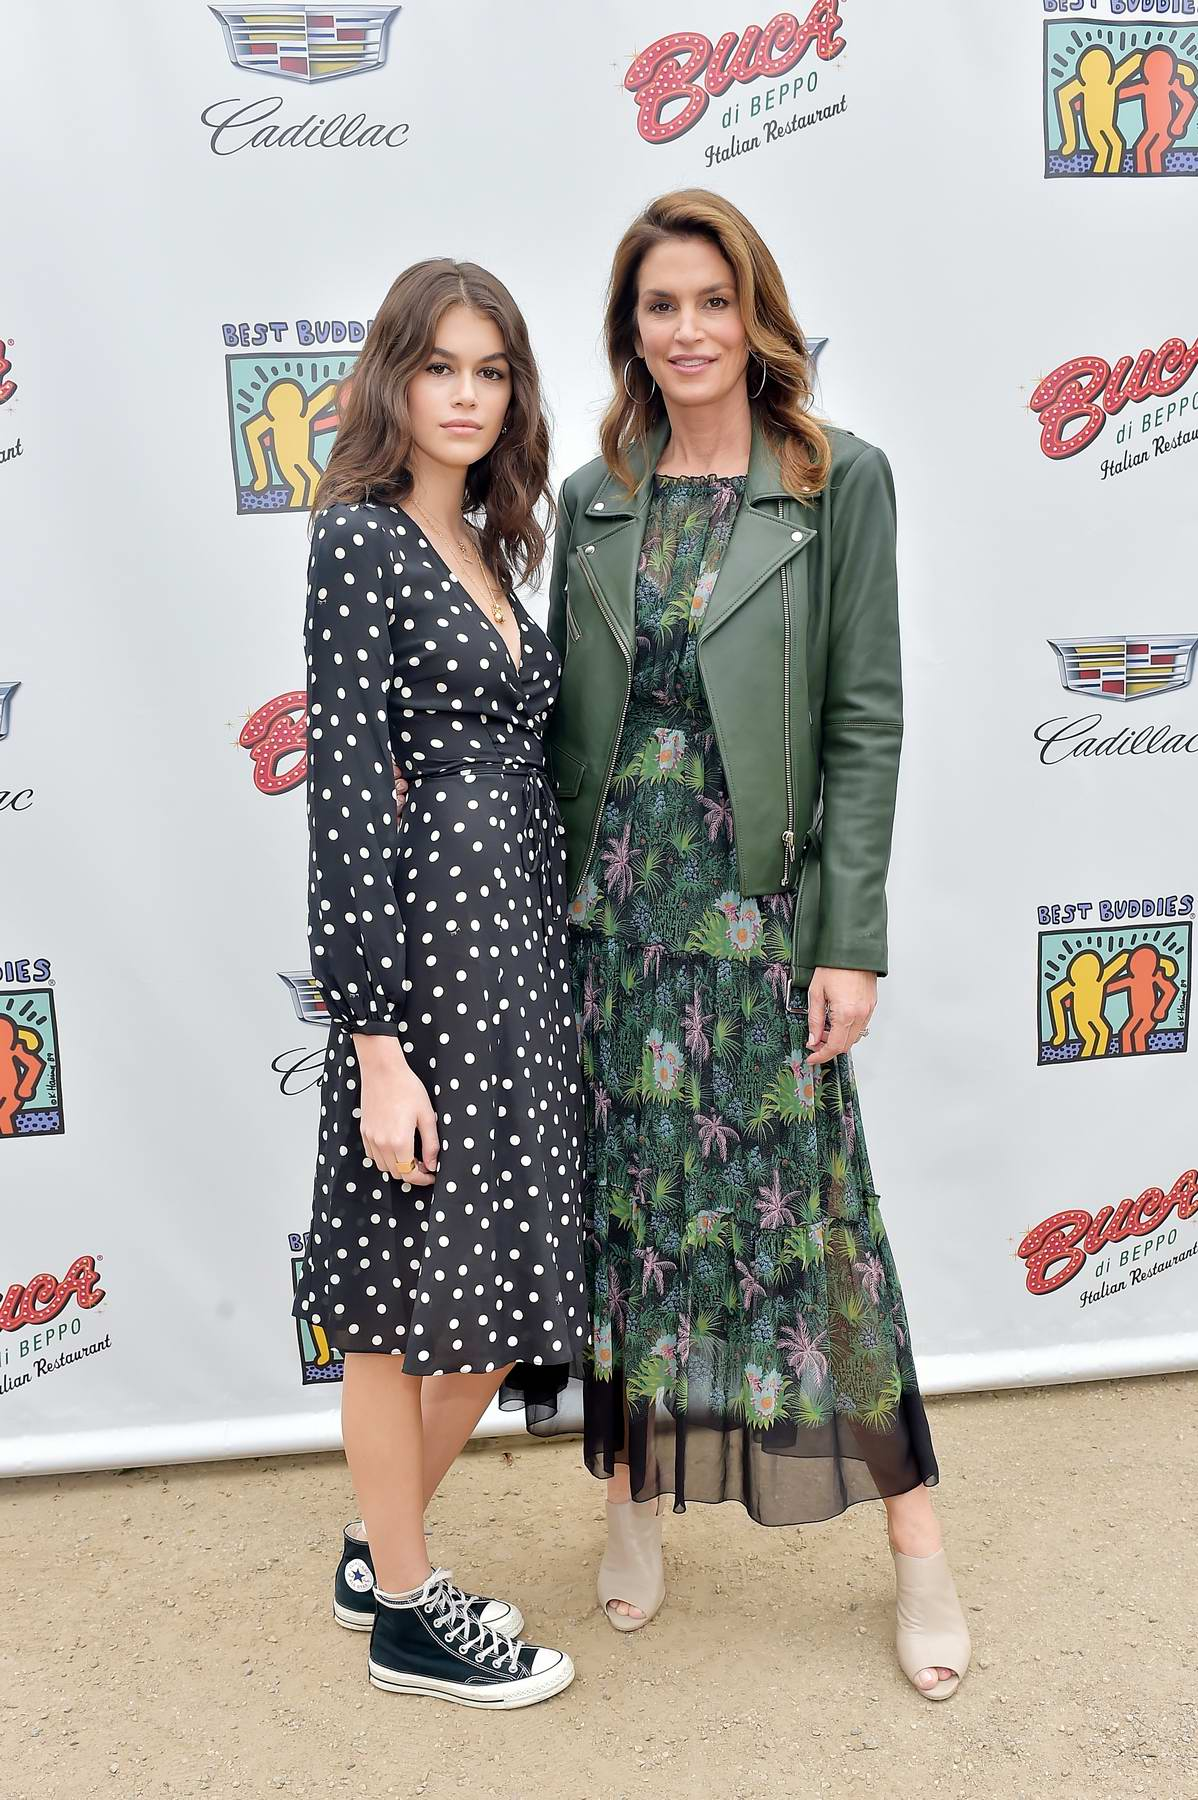 Kaia Gerber and Cindy Crawford attends 2018 Best Buddies Mother's Day brunch hosted by Vanessa Hudgens in Malibu, California